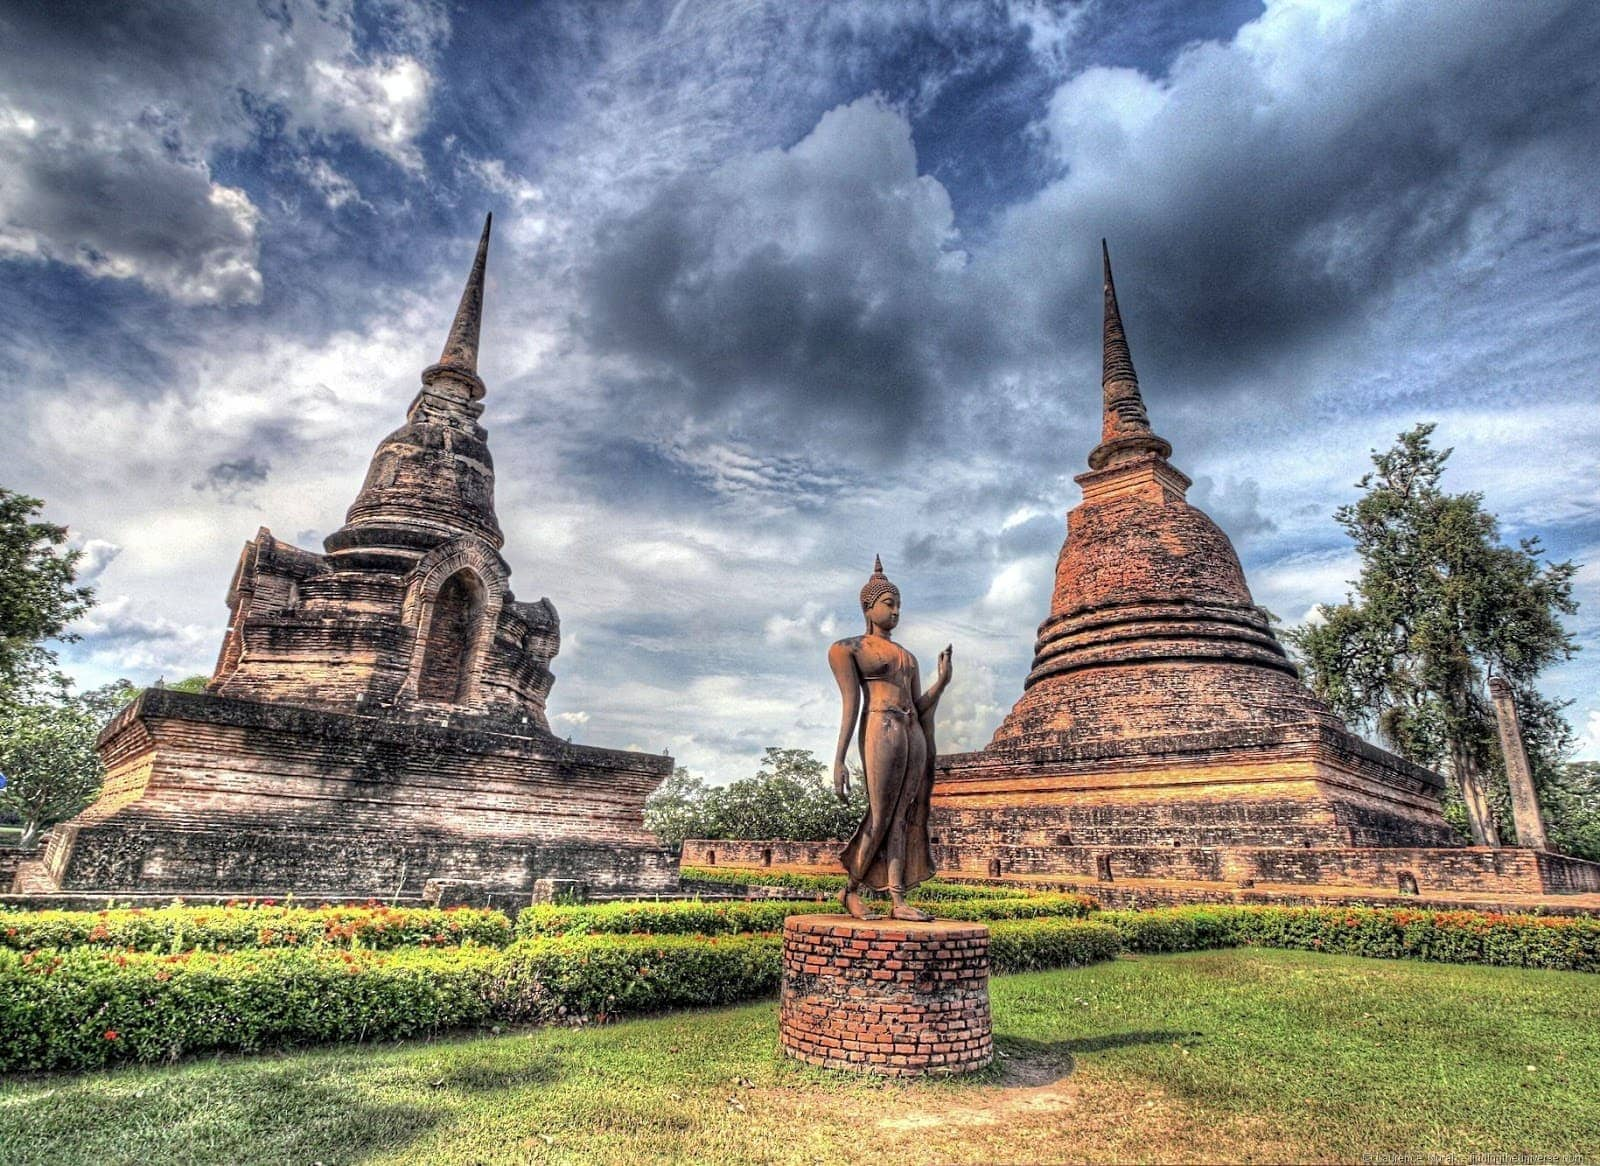 Statue and two wats sukhothai hdr